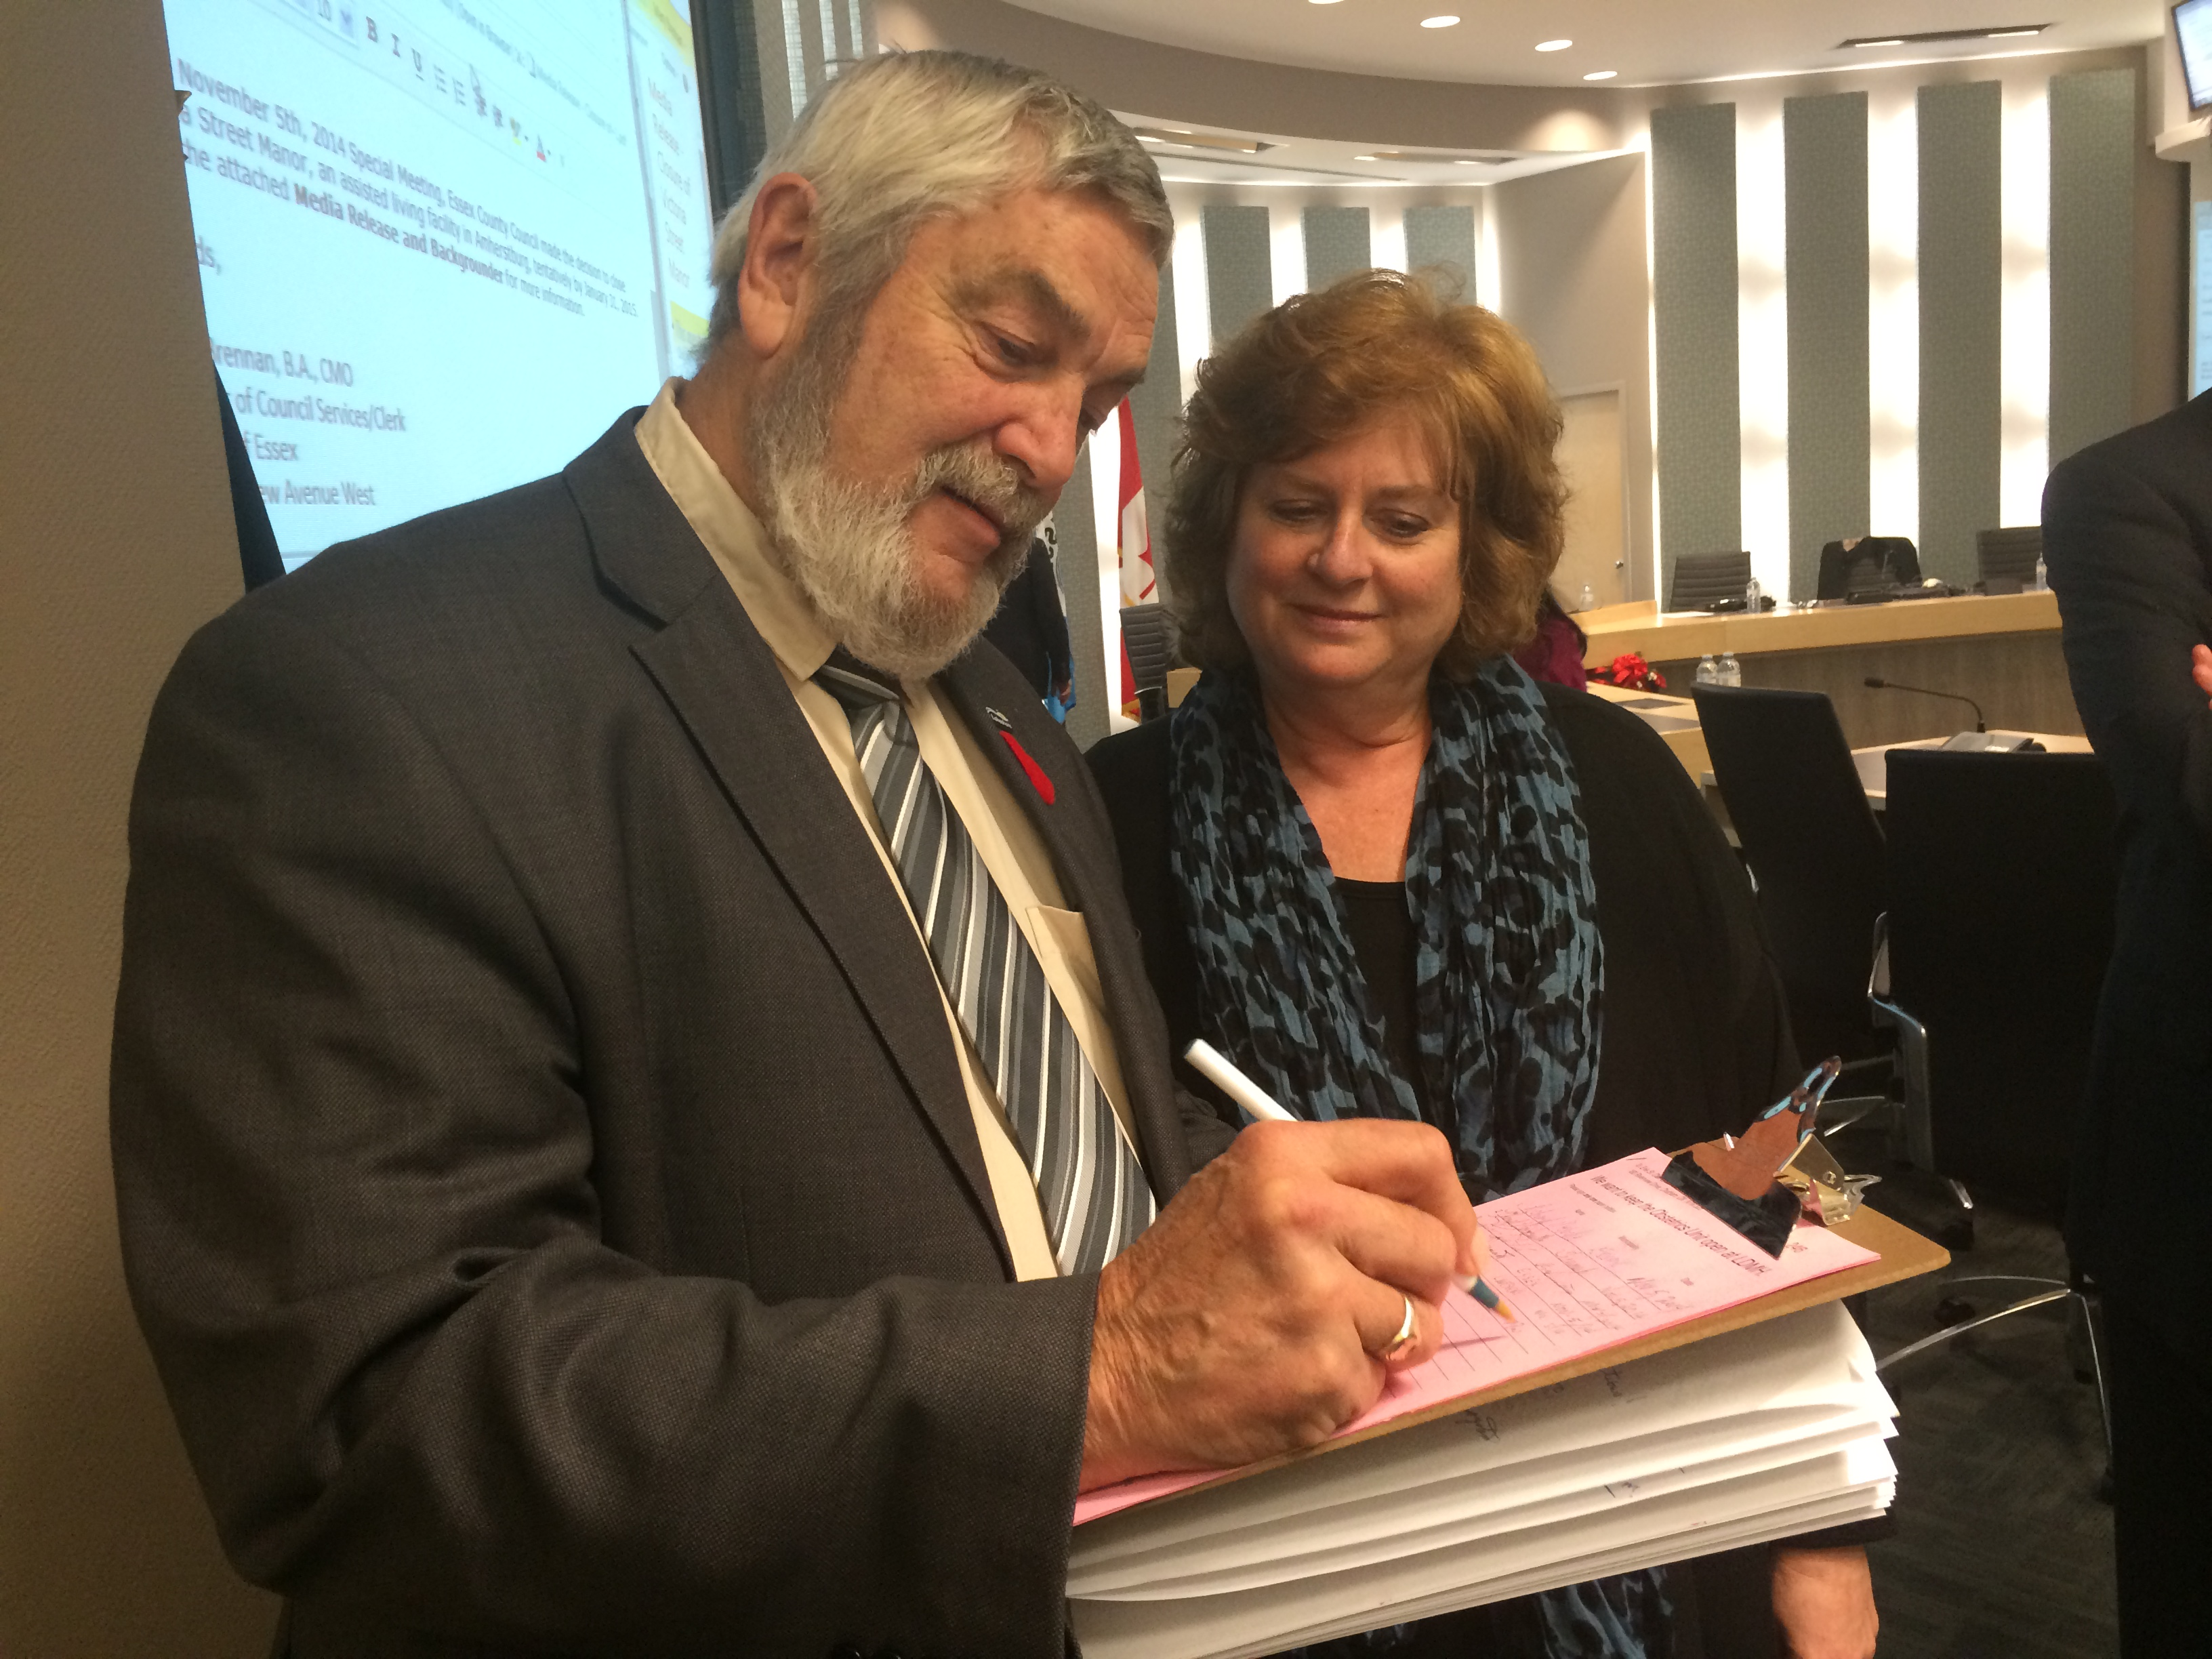 Lakeshore Mayor Tom Bain (L) in Council Chambers at the Essex Civic Centre on November 5, 2014 signing a petition handed out by former Kingsville Deputy Mayor Tamara Stomp (R) opposing the pending closure of the obstetrics ward at Leamington District Memorial Hospital. (Photo by Ricardo Veneza)